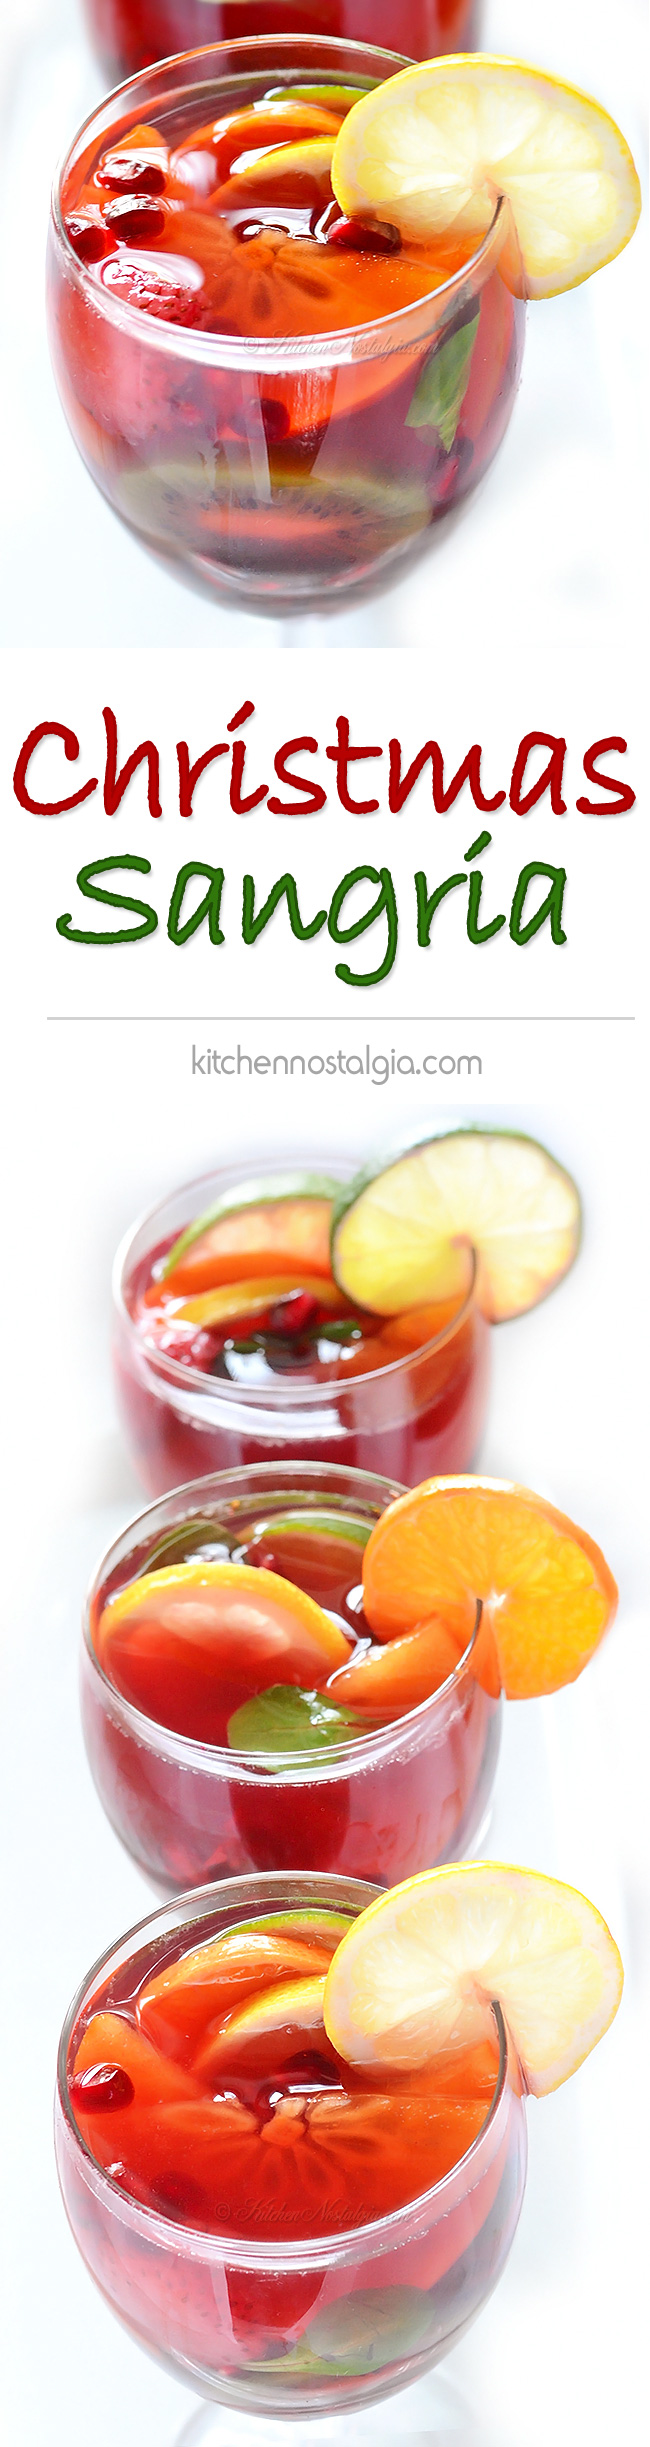 Christmas Sangria - kitchennostalgia.com